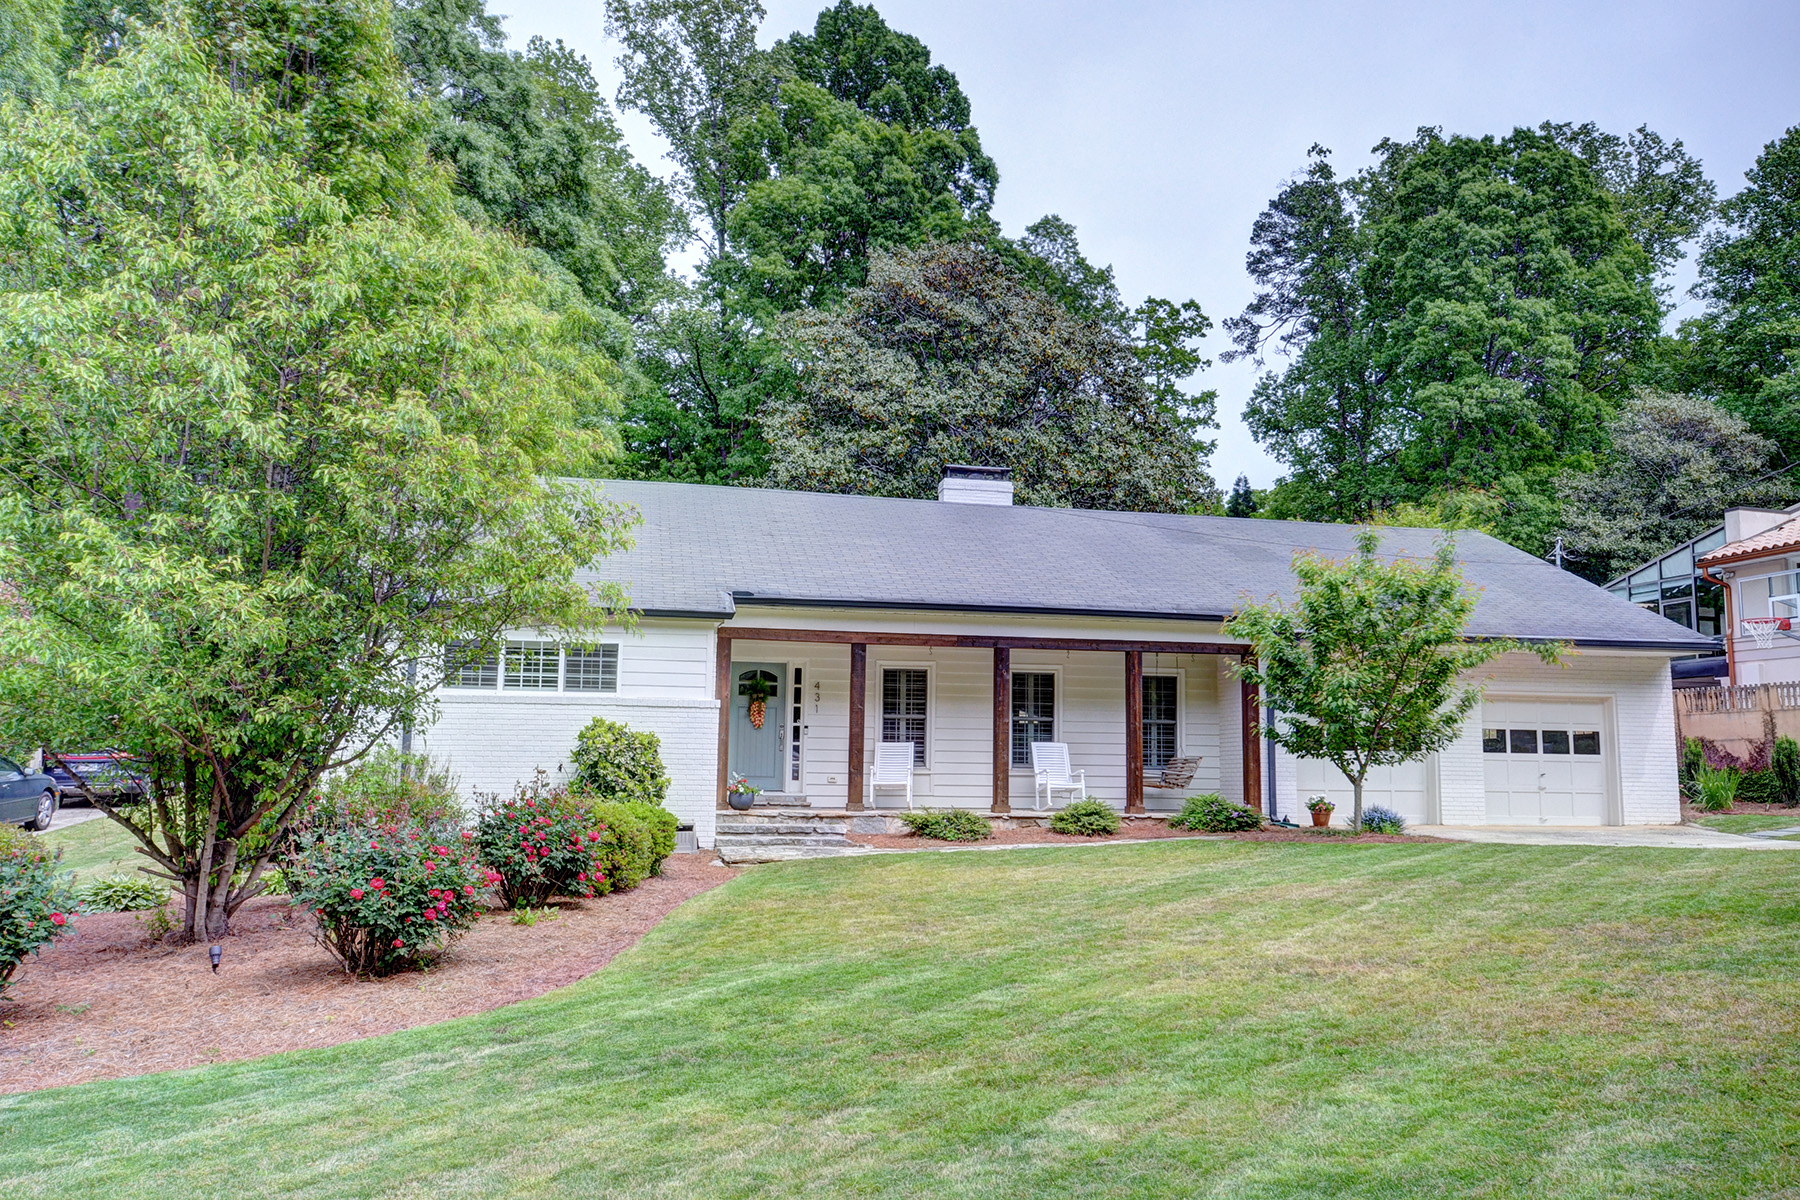 Single Family Homes for Sale at Beautifully Renovated Home in Decatur 431 Landover Drive Decatur, Georgia 30030 United States